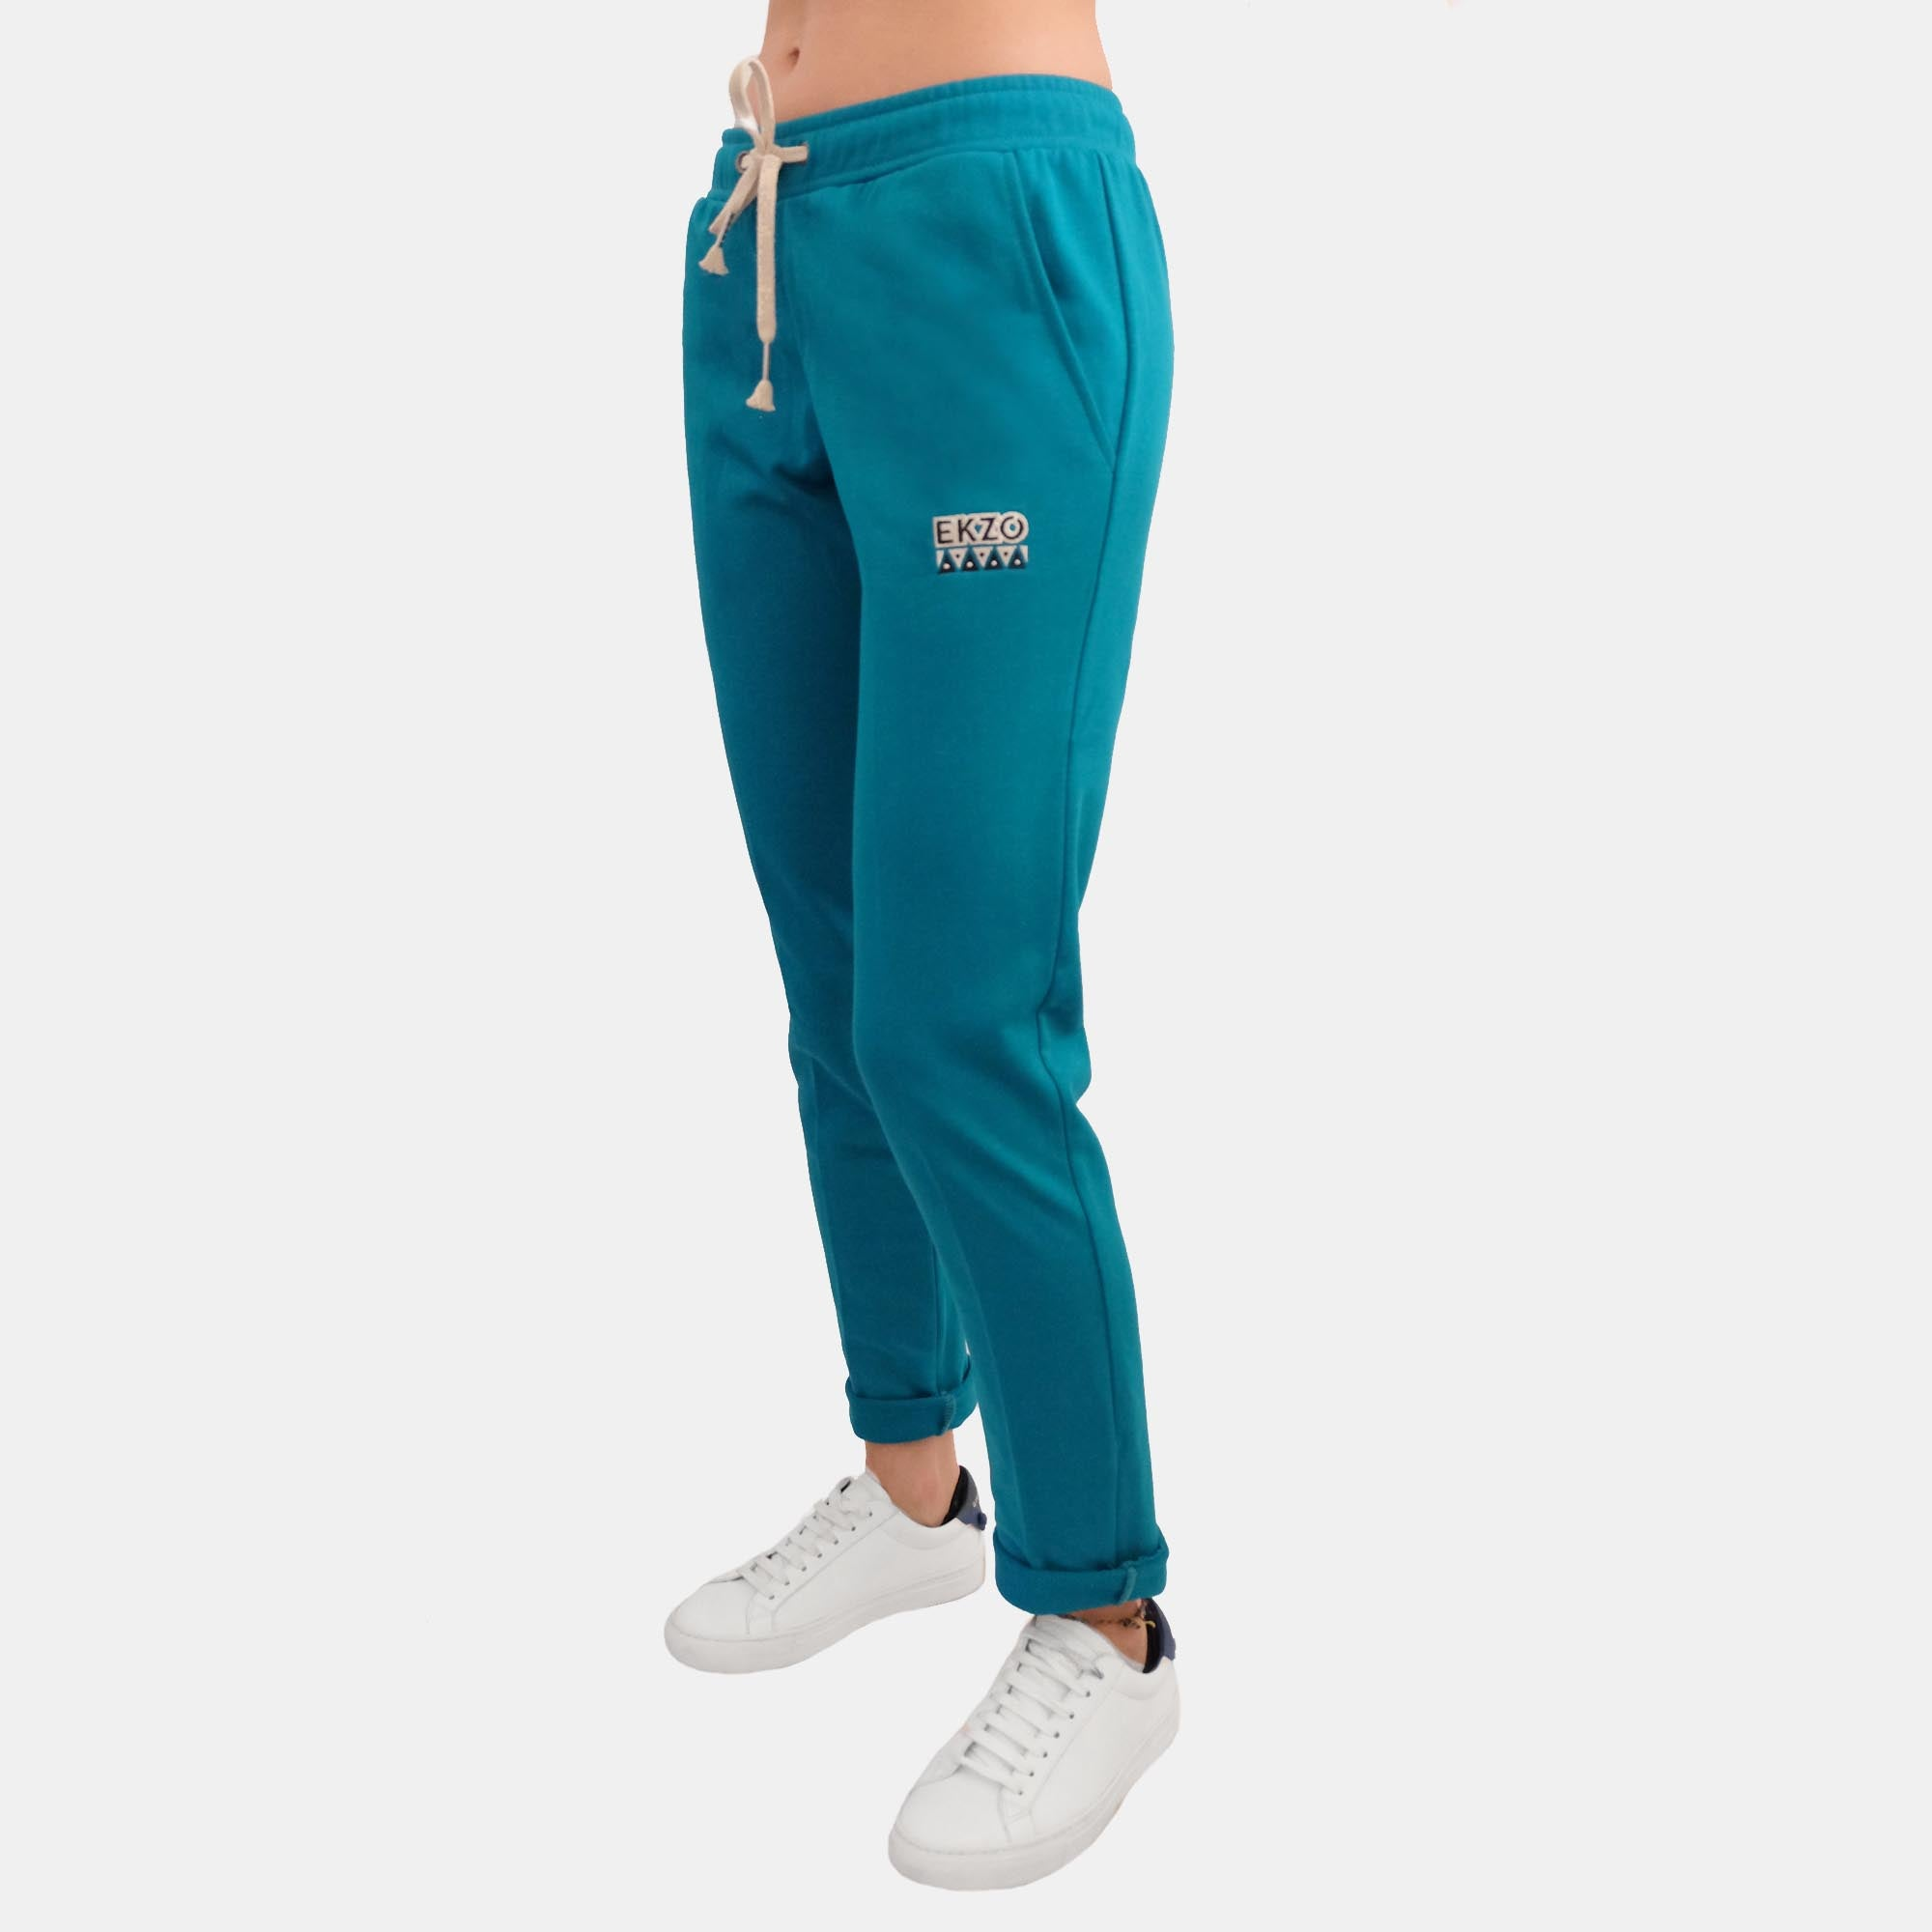 EKZO Everyday Pant - Jaws - EKZO